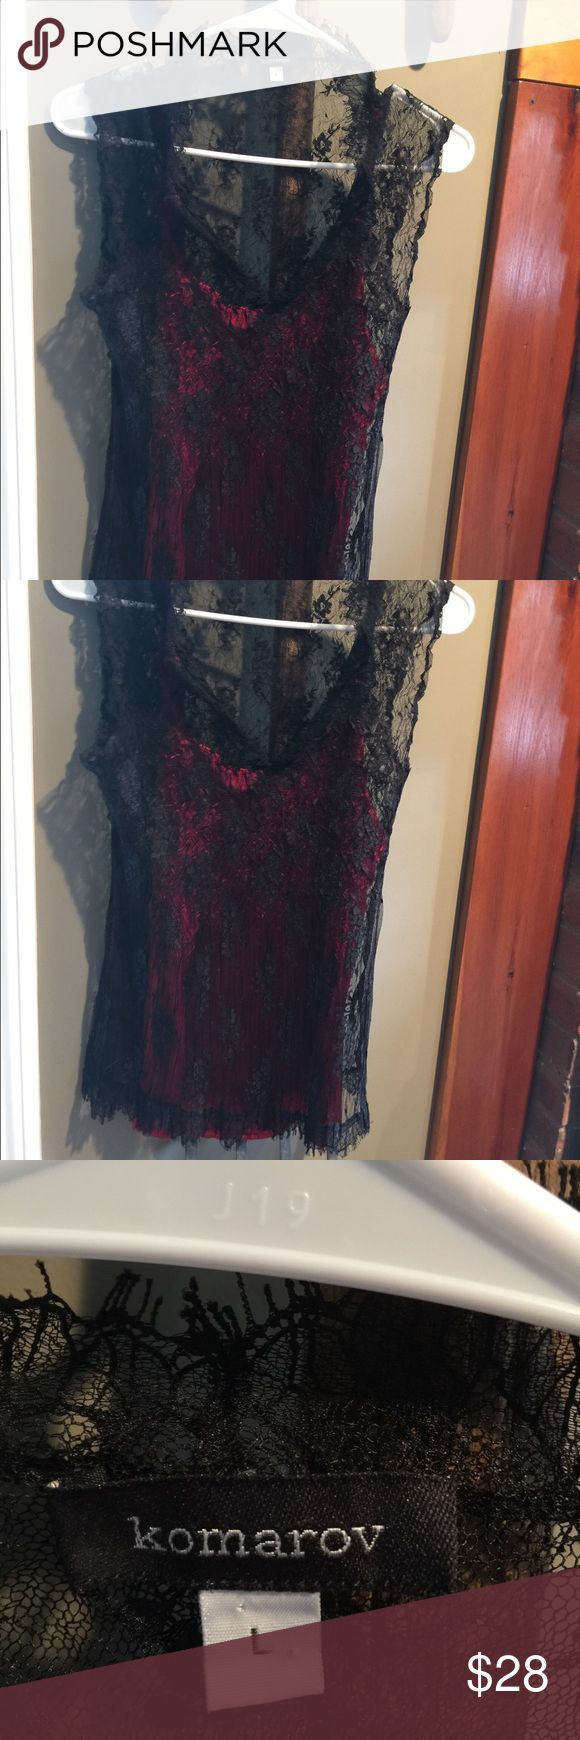 Sleeveless layered blouse in black lace red cami Romantic and sexy. Lace overlay with silky red camisole attached. Flows beautifully and in excellent condition. Perfect for dinner dates and dancing🎶 Komarov Tops Camisoles